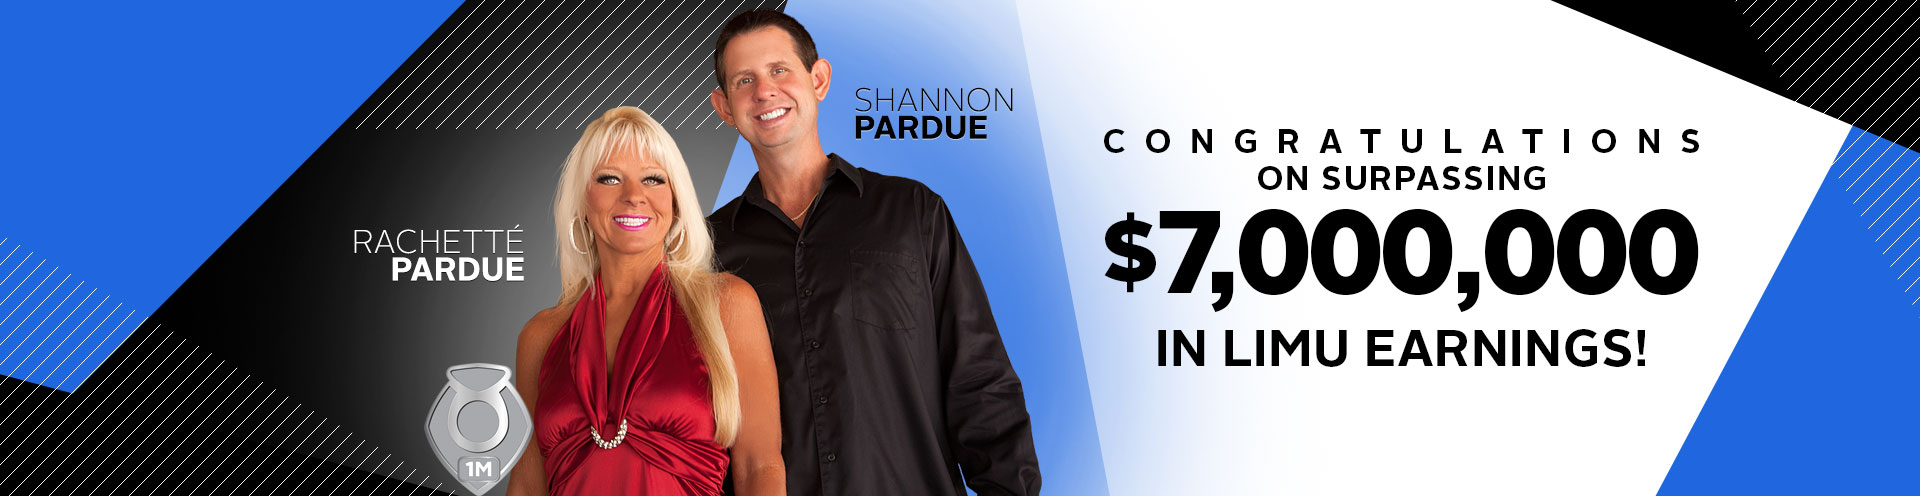 LIMU_HomepageSliders_Pardue_7_Million